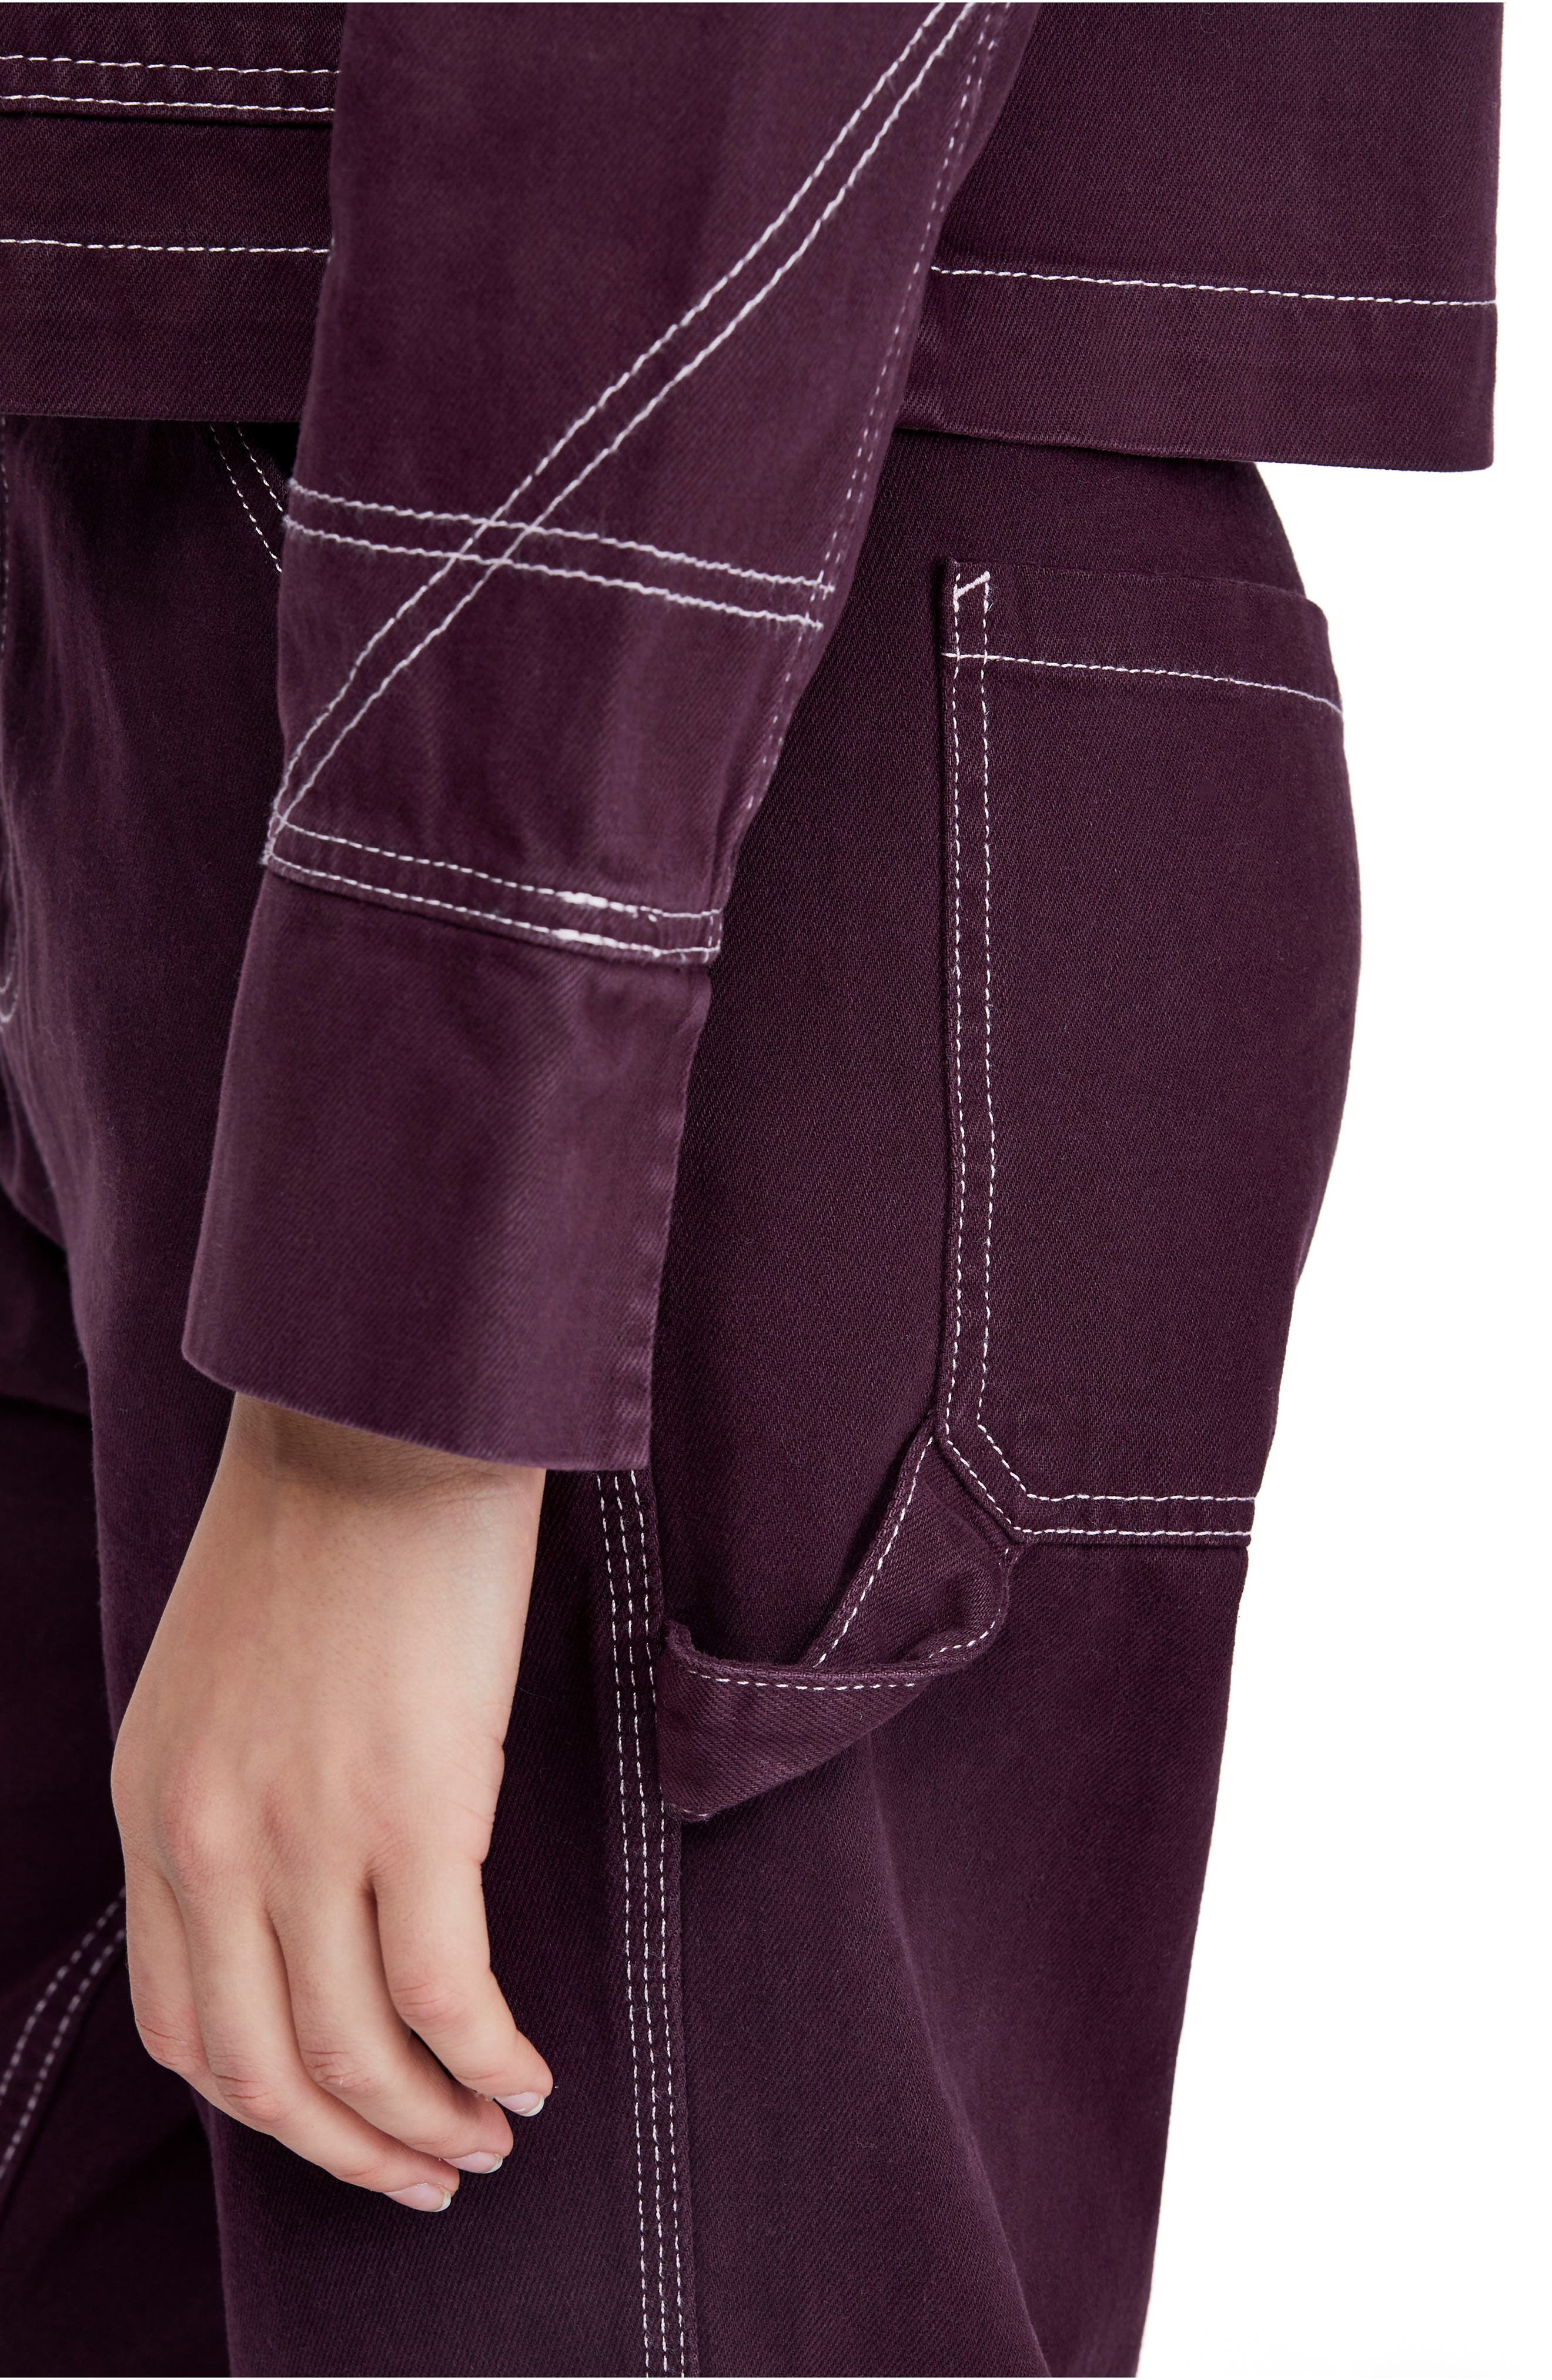 Urban Outfitters Workwear Pants,                             Alternate thumbnail 4, color,                             WINE